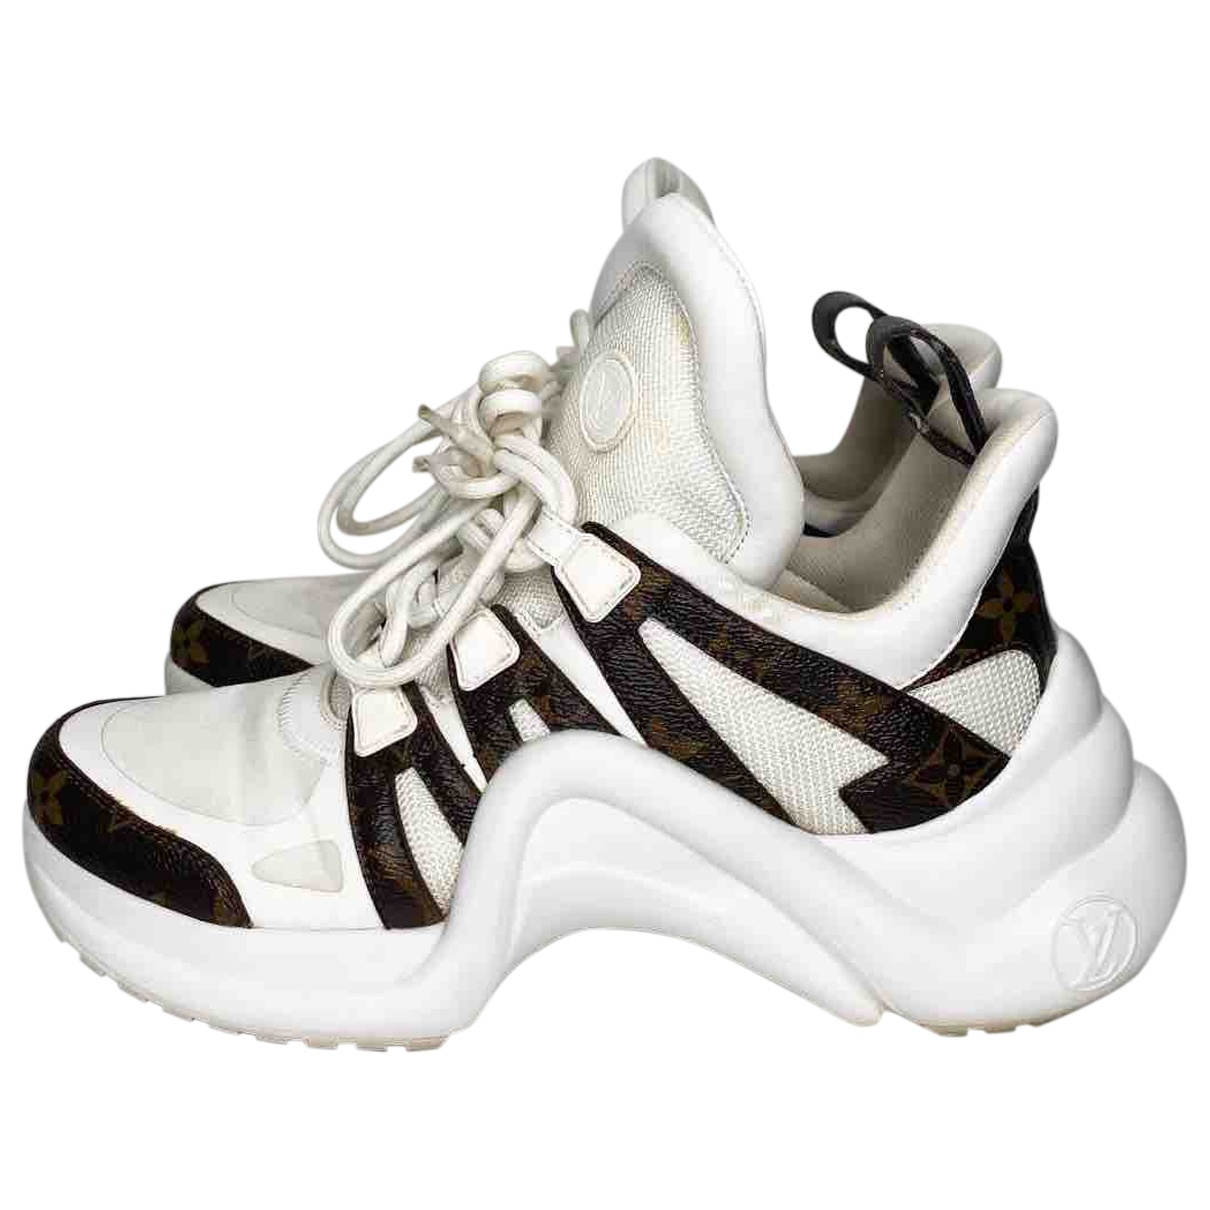 Louis Vuitton Archlight White Cloth Trainers for Women 38 EU